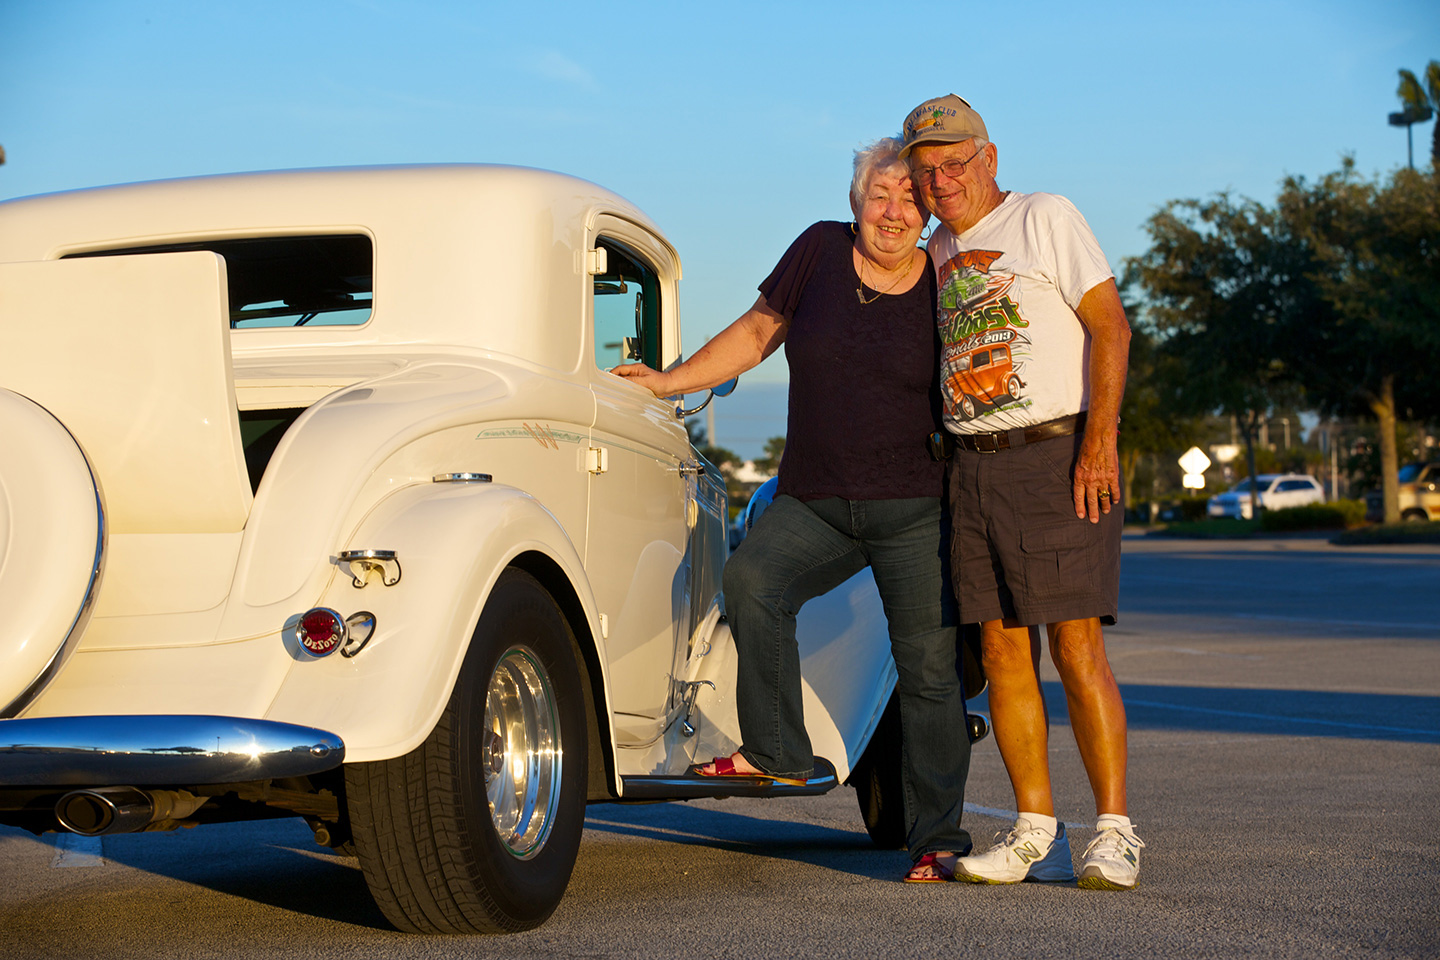 Old Teenagers Building A Community With Classic Cars ChickfilA - Classic cars nice